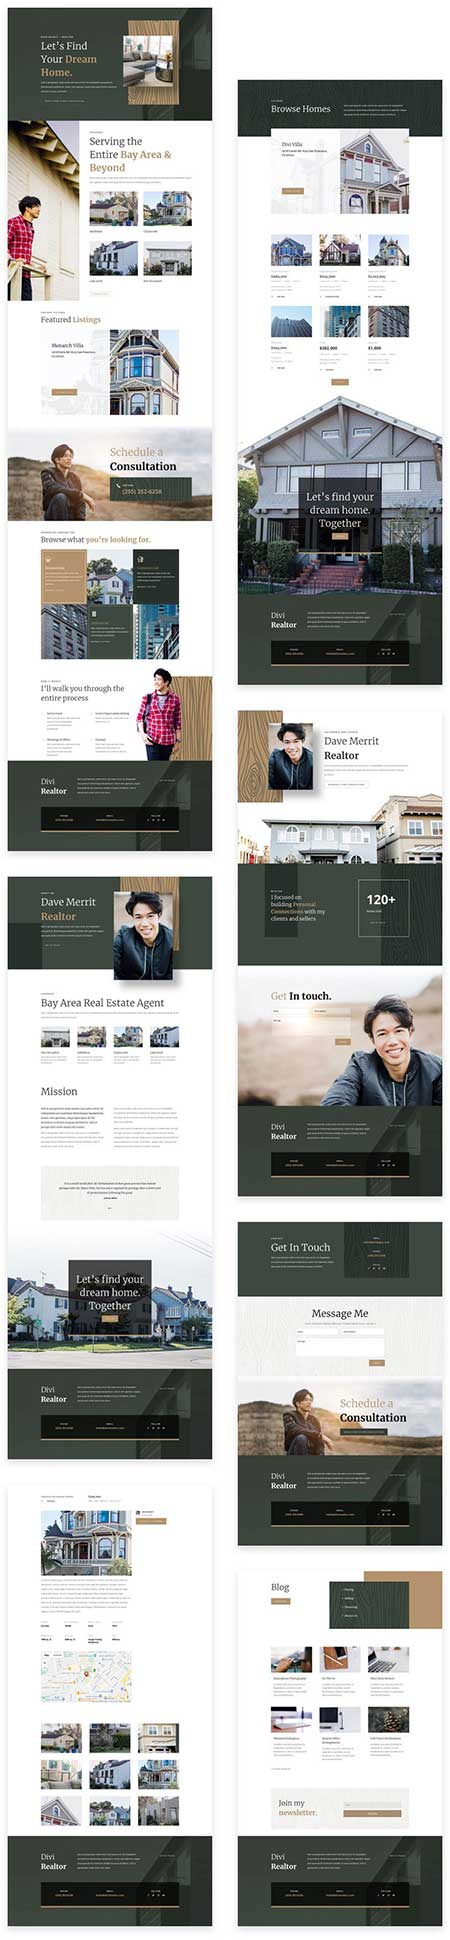 Divi realtor layout pack